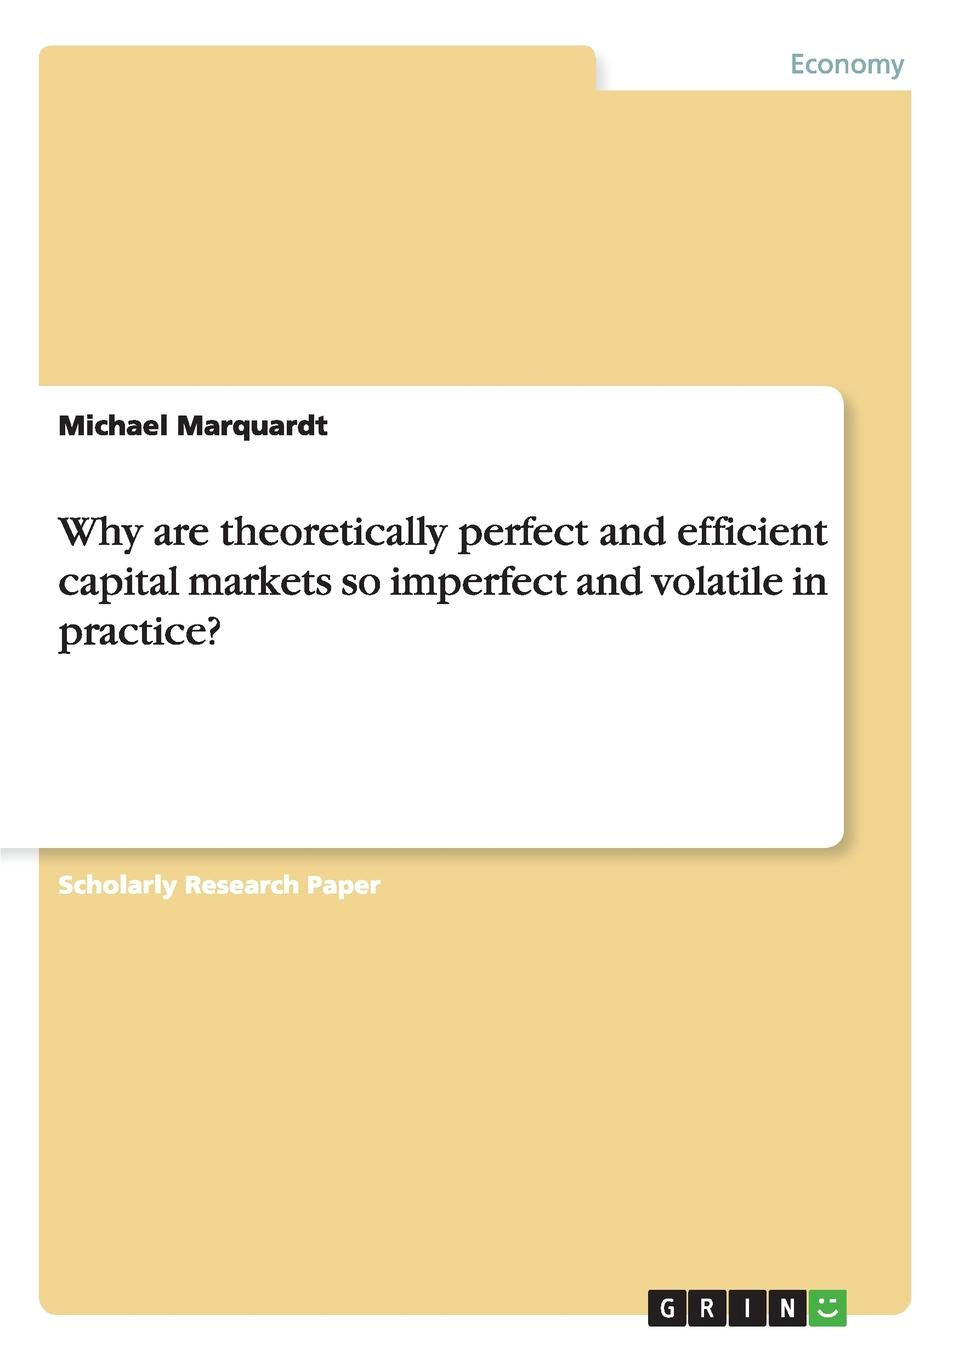 Michael Marquardt Why are theoretically perfect and efficient capital markets so imperfect and volatile in practice. malcolm kemp market consistency model calibration in imperfect markets